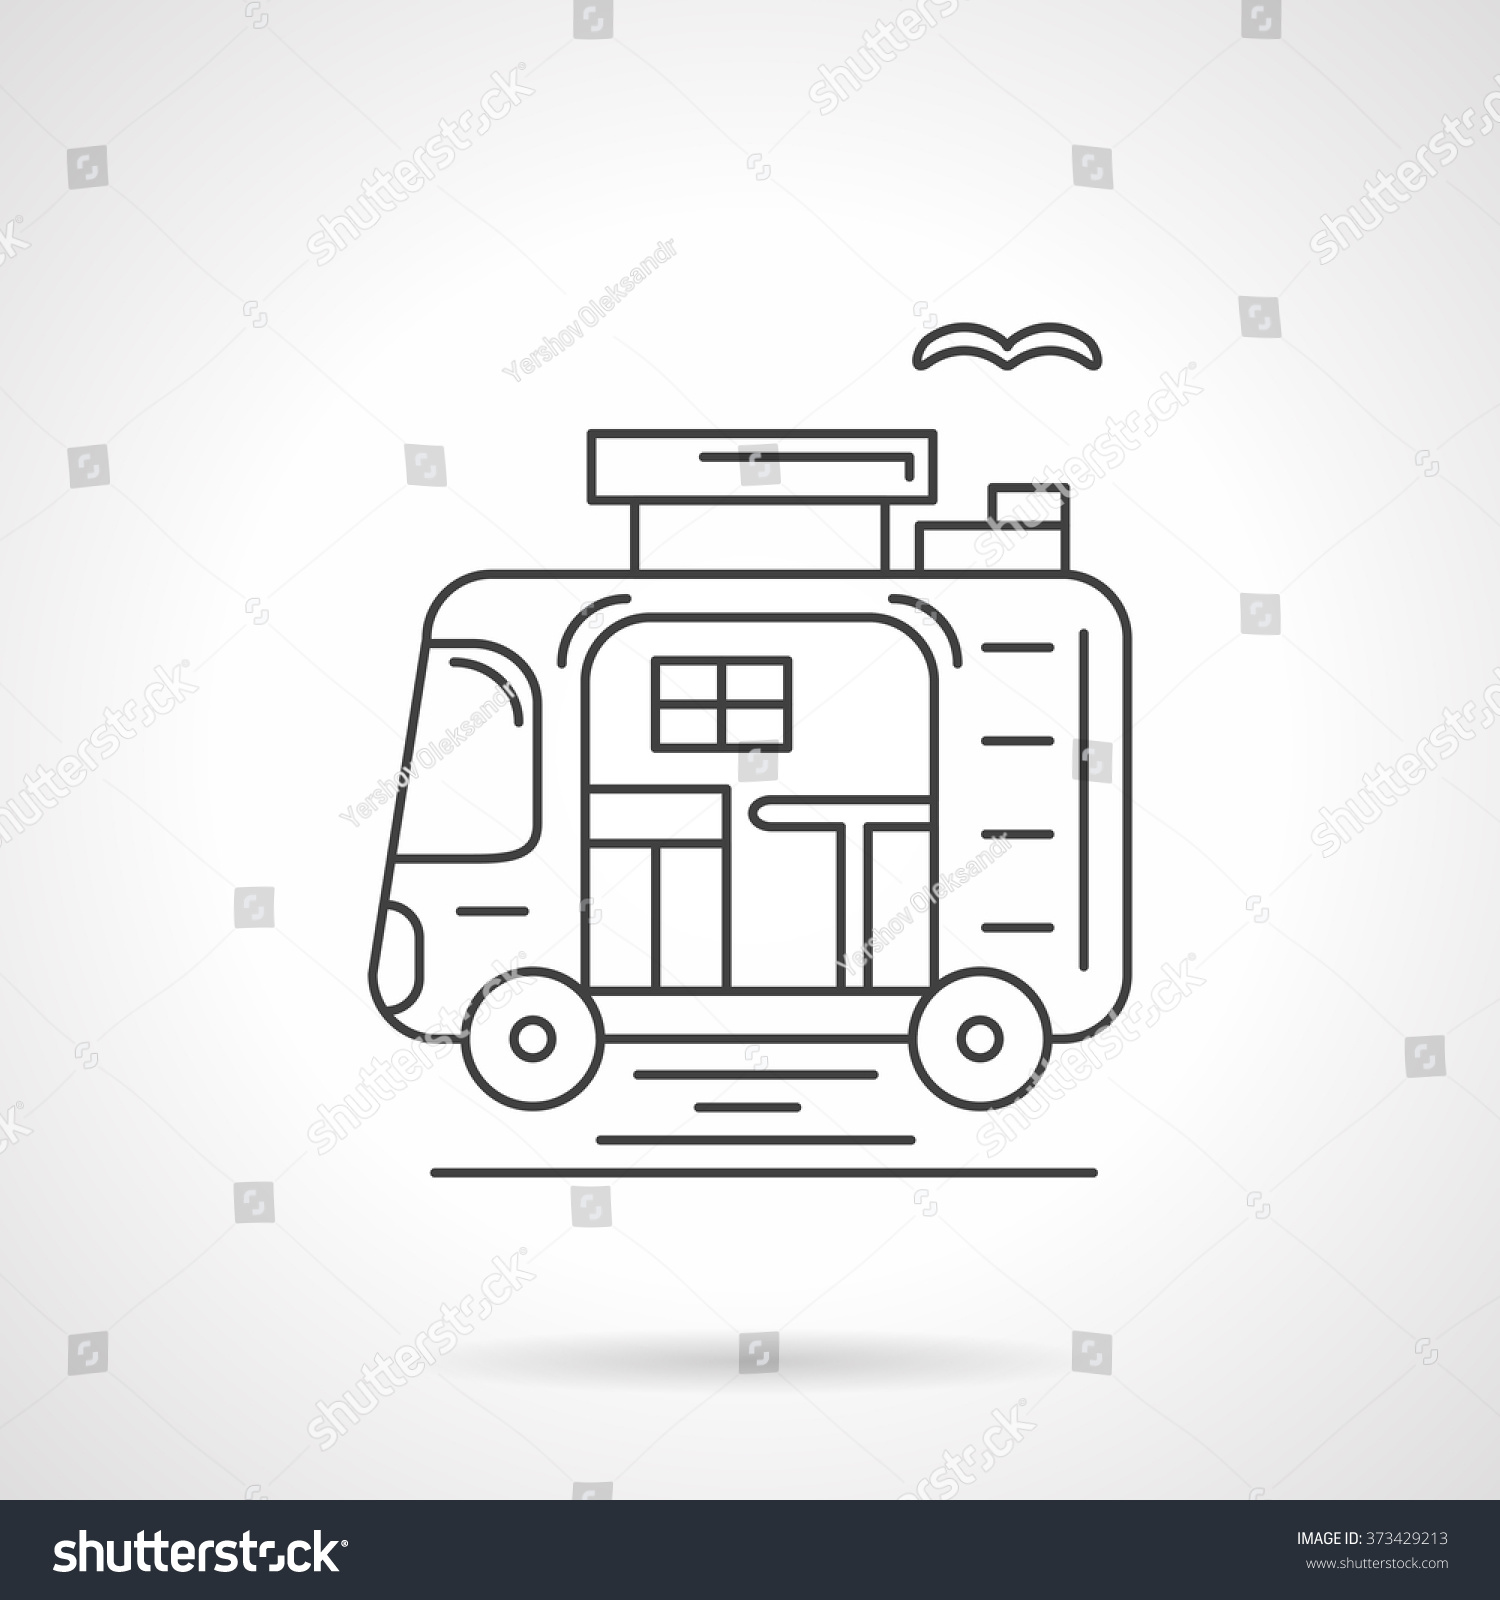 Caravan Car Or Camping Trailer Active Leisure Travel And Outdoors Rest Concept Vector